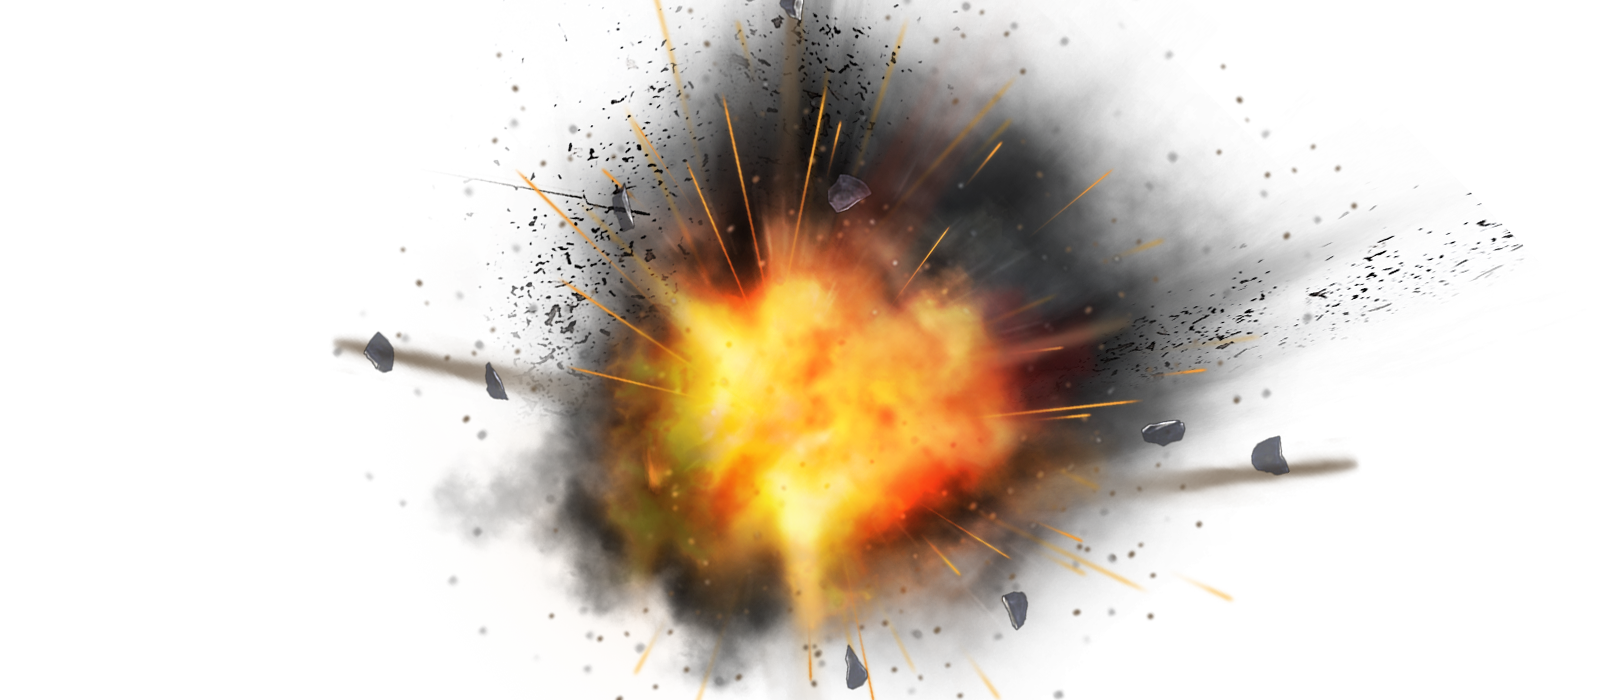 Atomic Explosion Transparent Background PNG Image